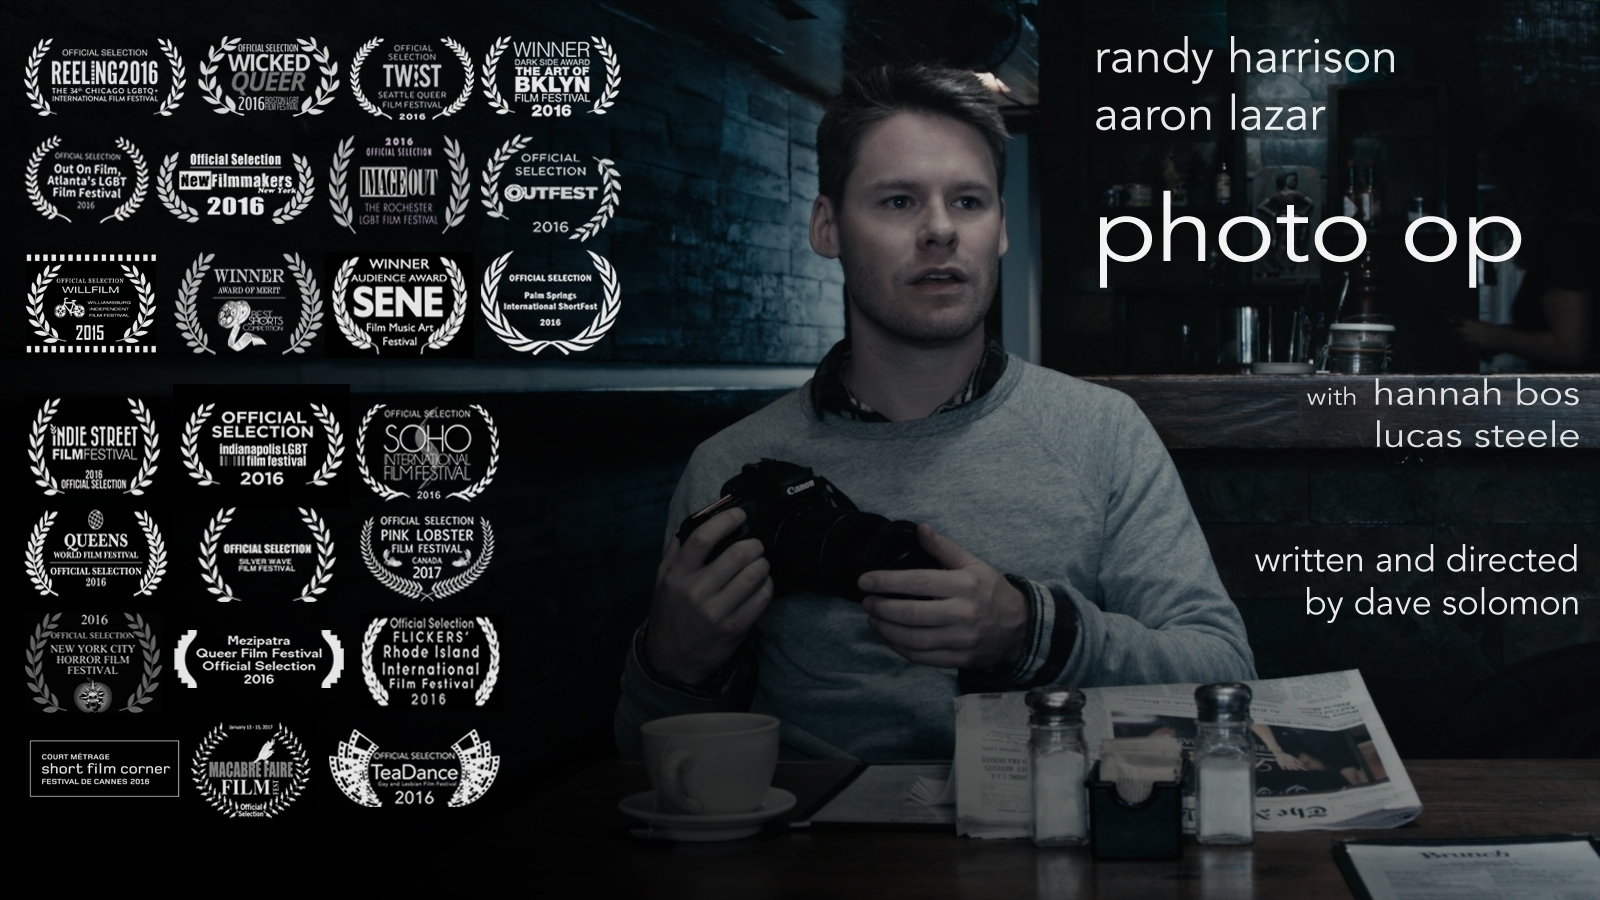 PHOTO OP, 10 mins 2015    written and directed by Dave Solomon    with Randy Harrison, Aaron Lazar, Hannah Bos and Lucas Steele    produced by Harris Doran and Ashley Kate Adams    executive producer Fern Kershon    director of photography Karina Silva    edited by Sam Buntrock    production design - Mitch Dean